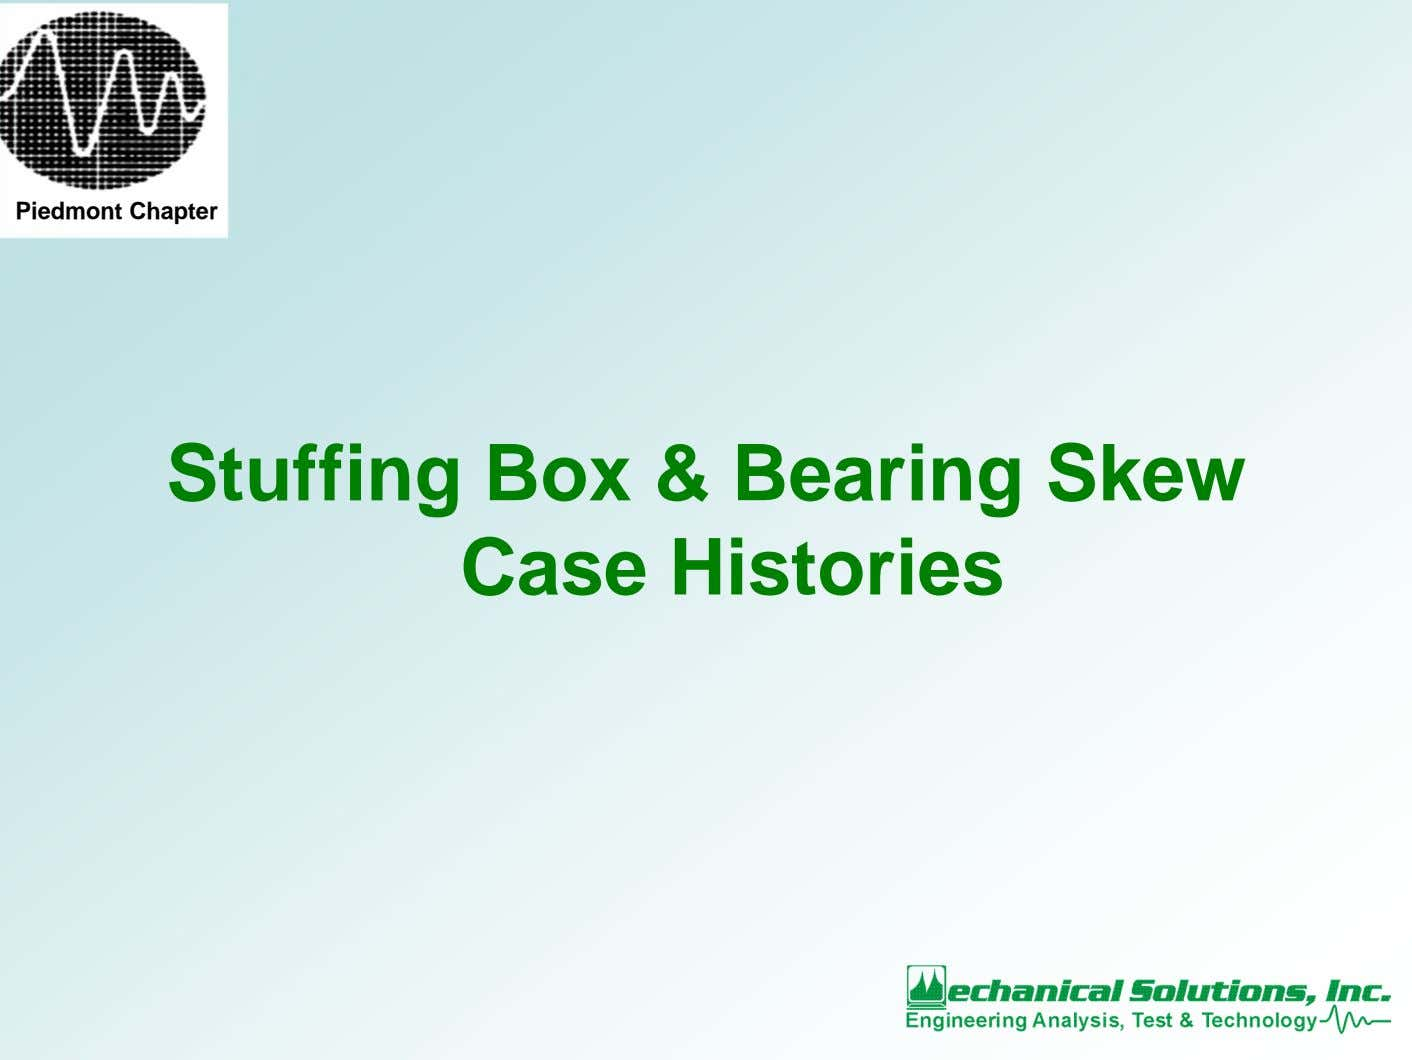 Piedmont Chapter Stuffing Box & Bearing Skew Case Histories